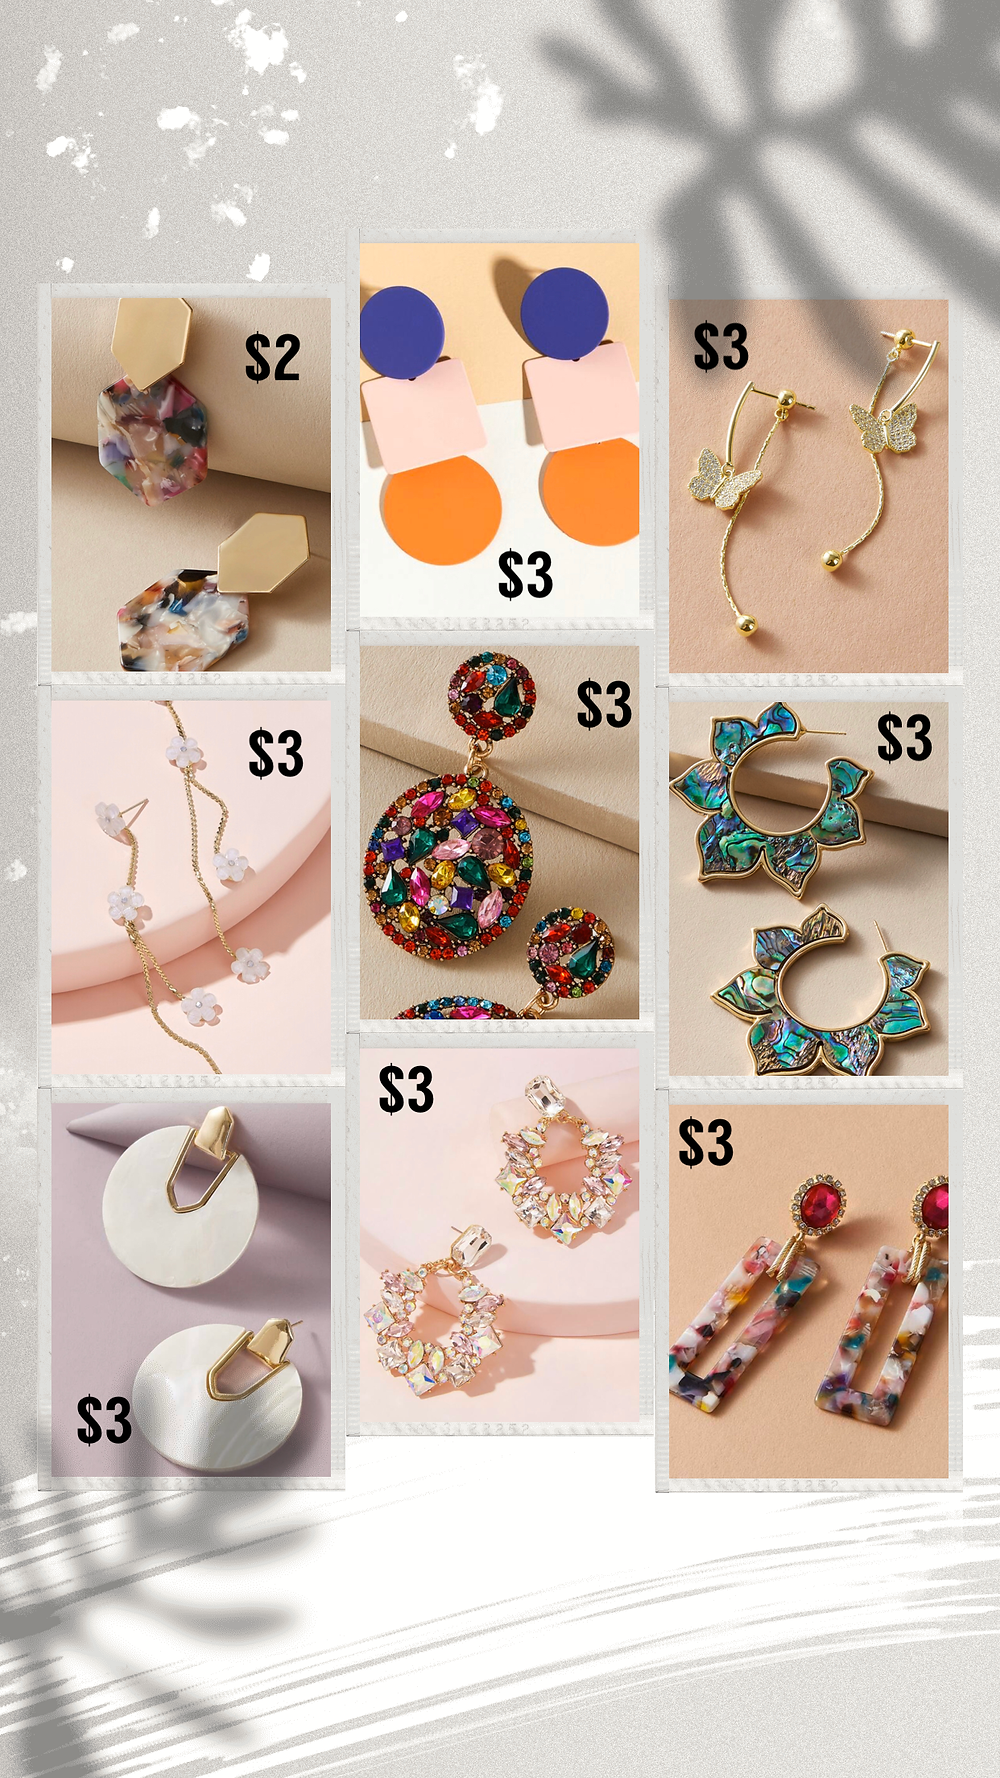 Affordable fun and colorful earrings from Shein